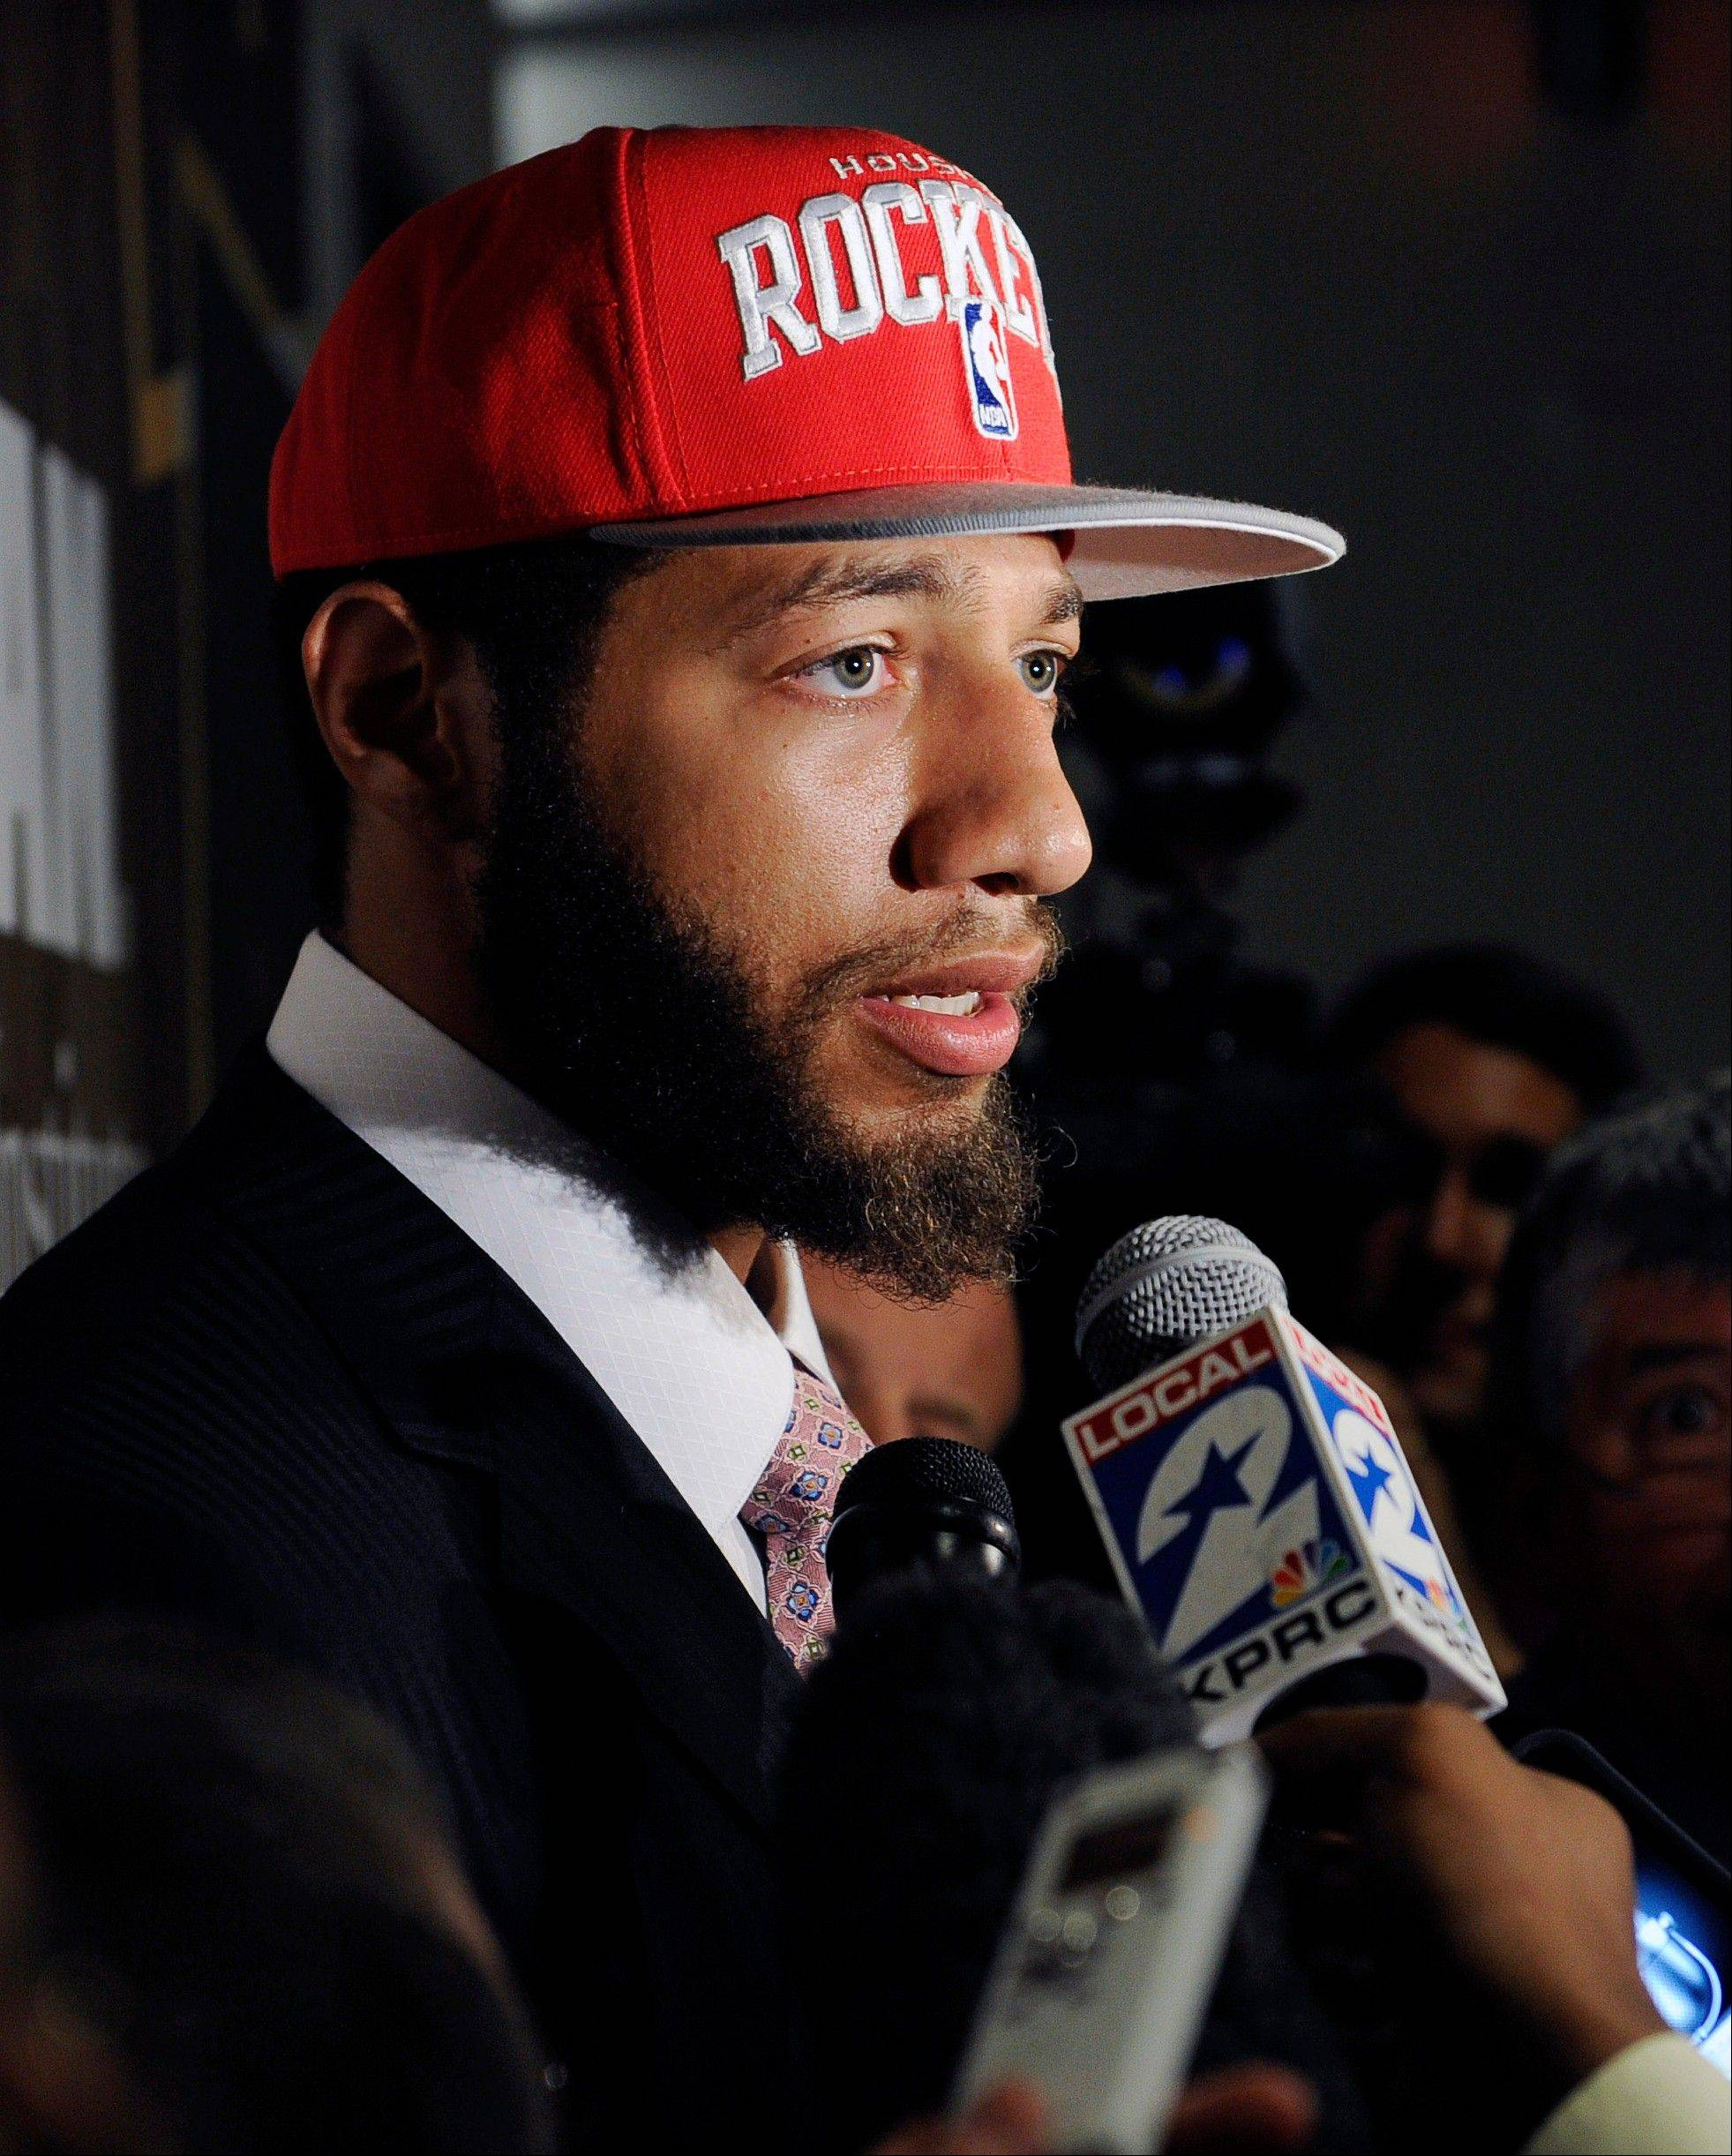 Earlier this month, NBA rookie Royce White disclosed that he is afraid to fly.